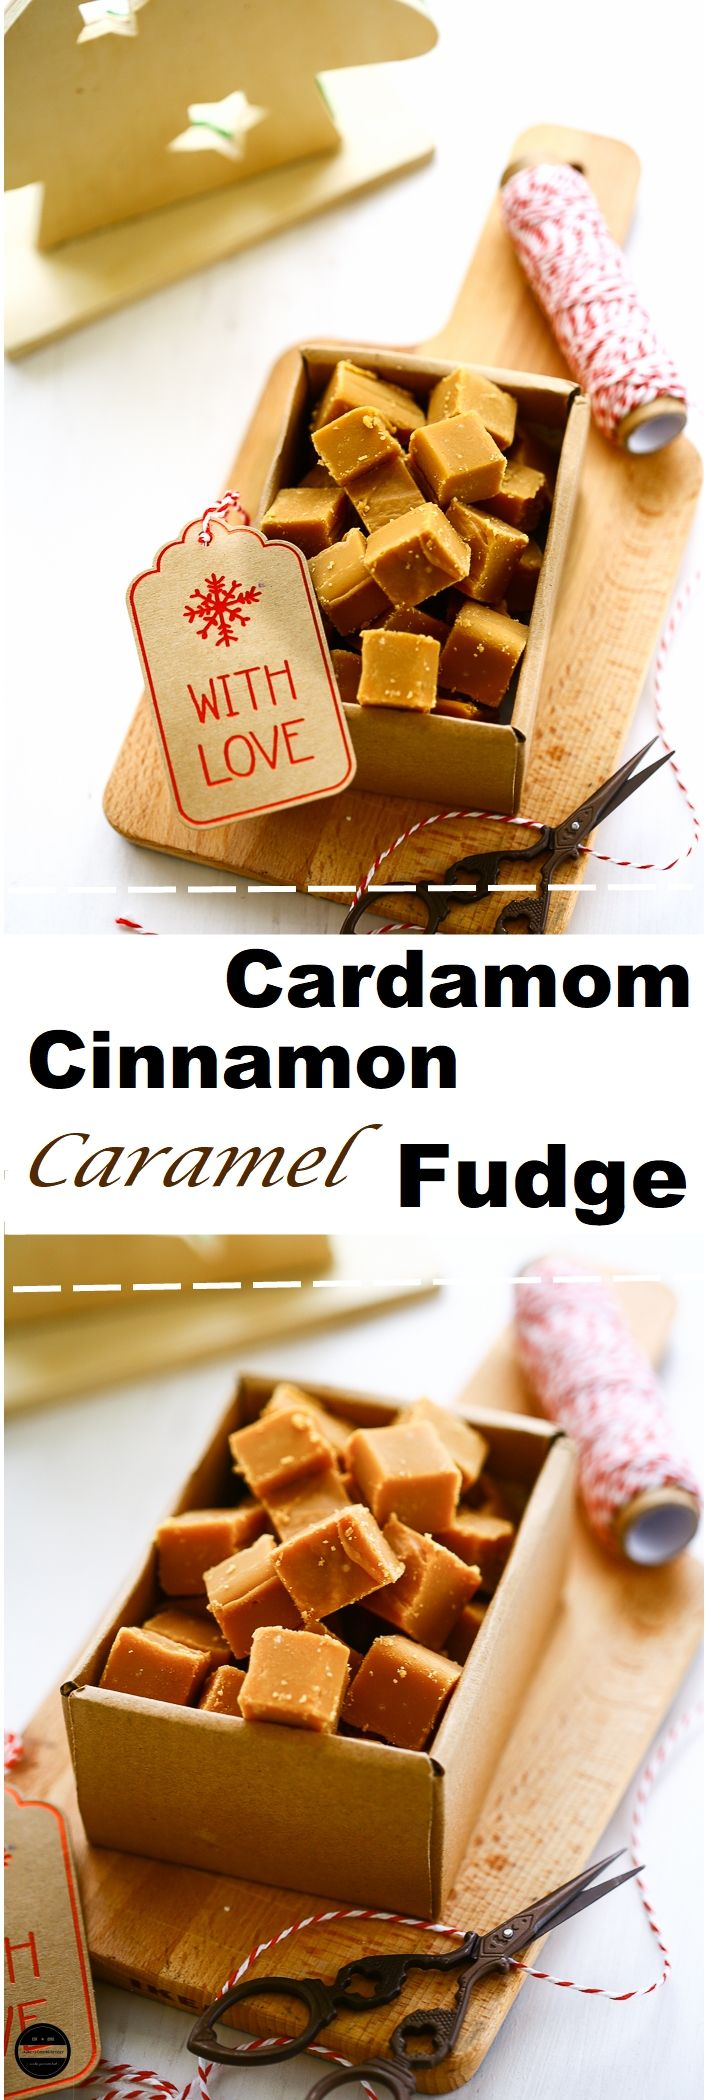 Cardamom, Cinnamon and Caramel Fudge